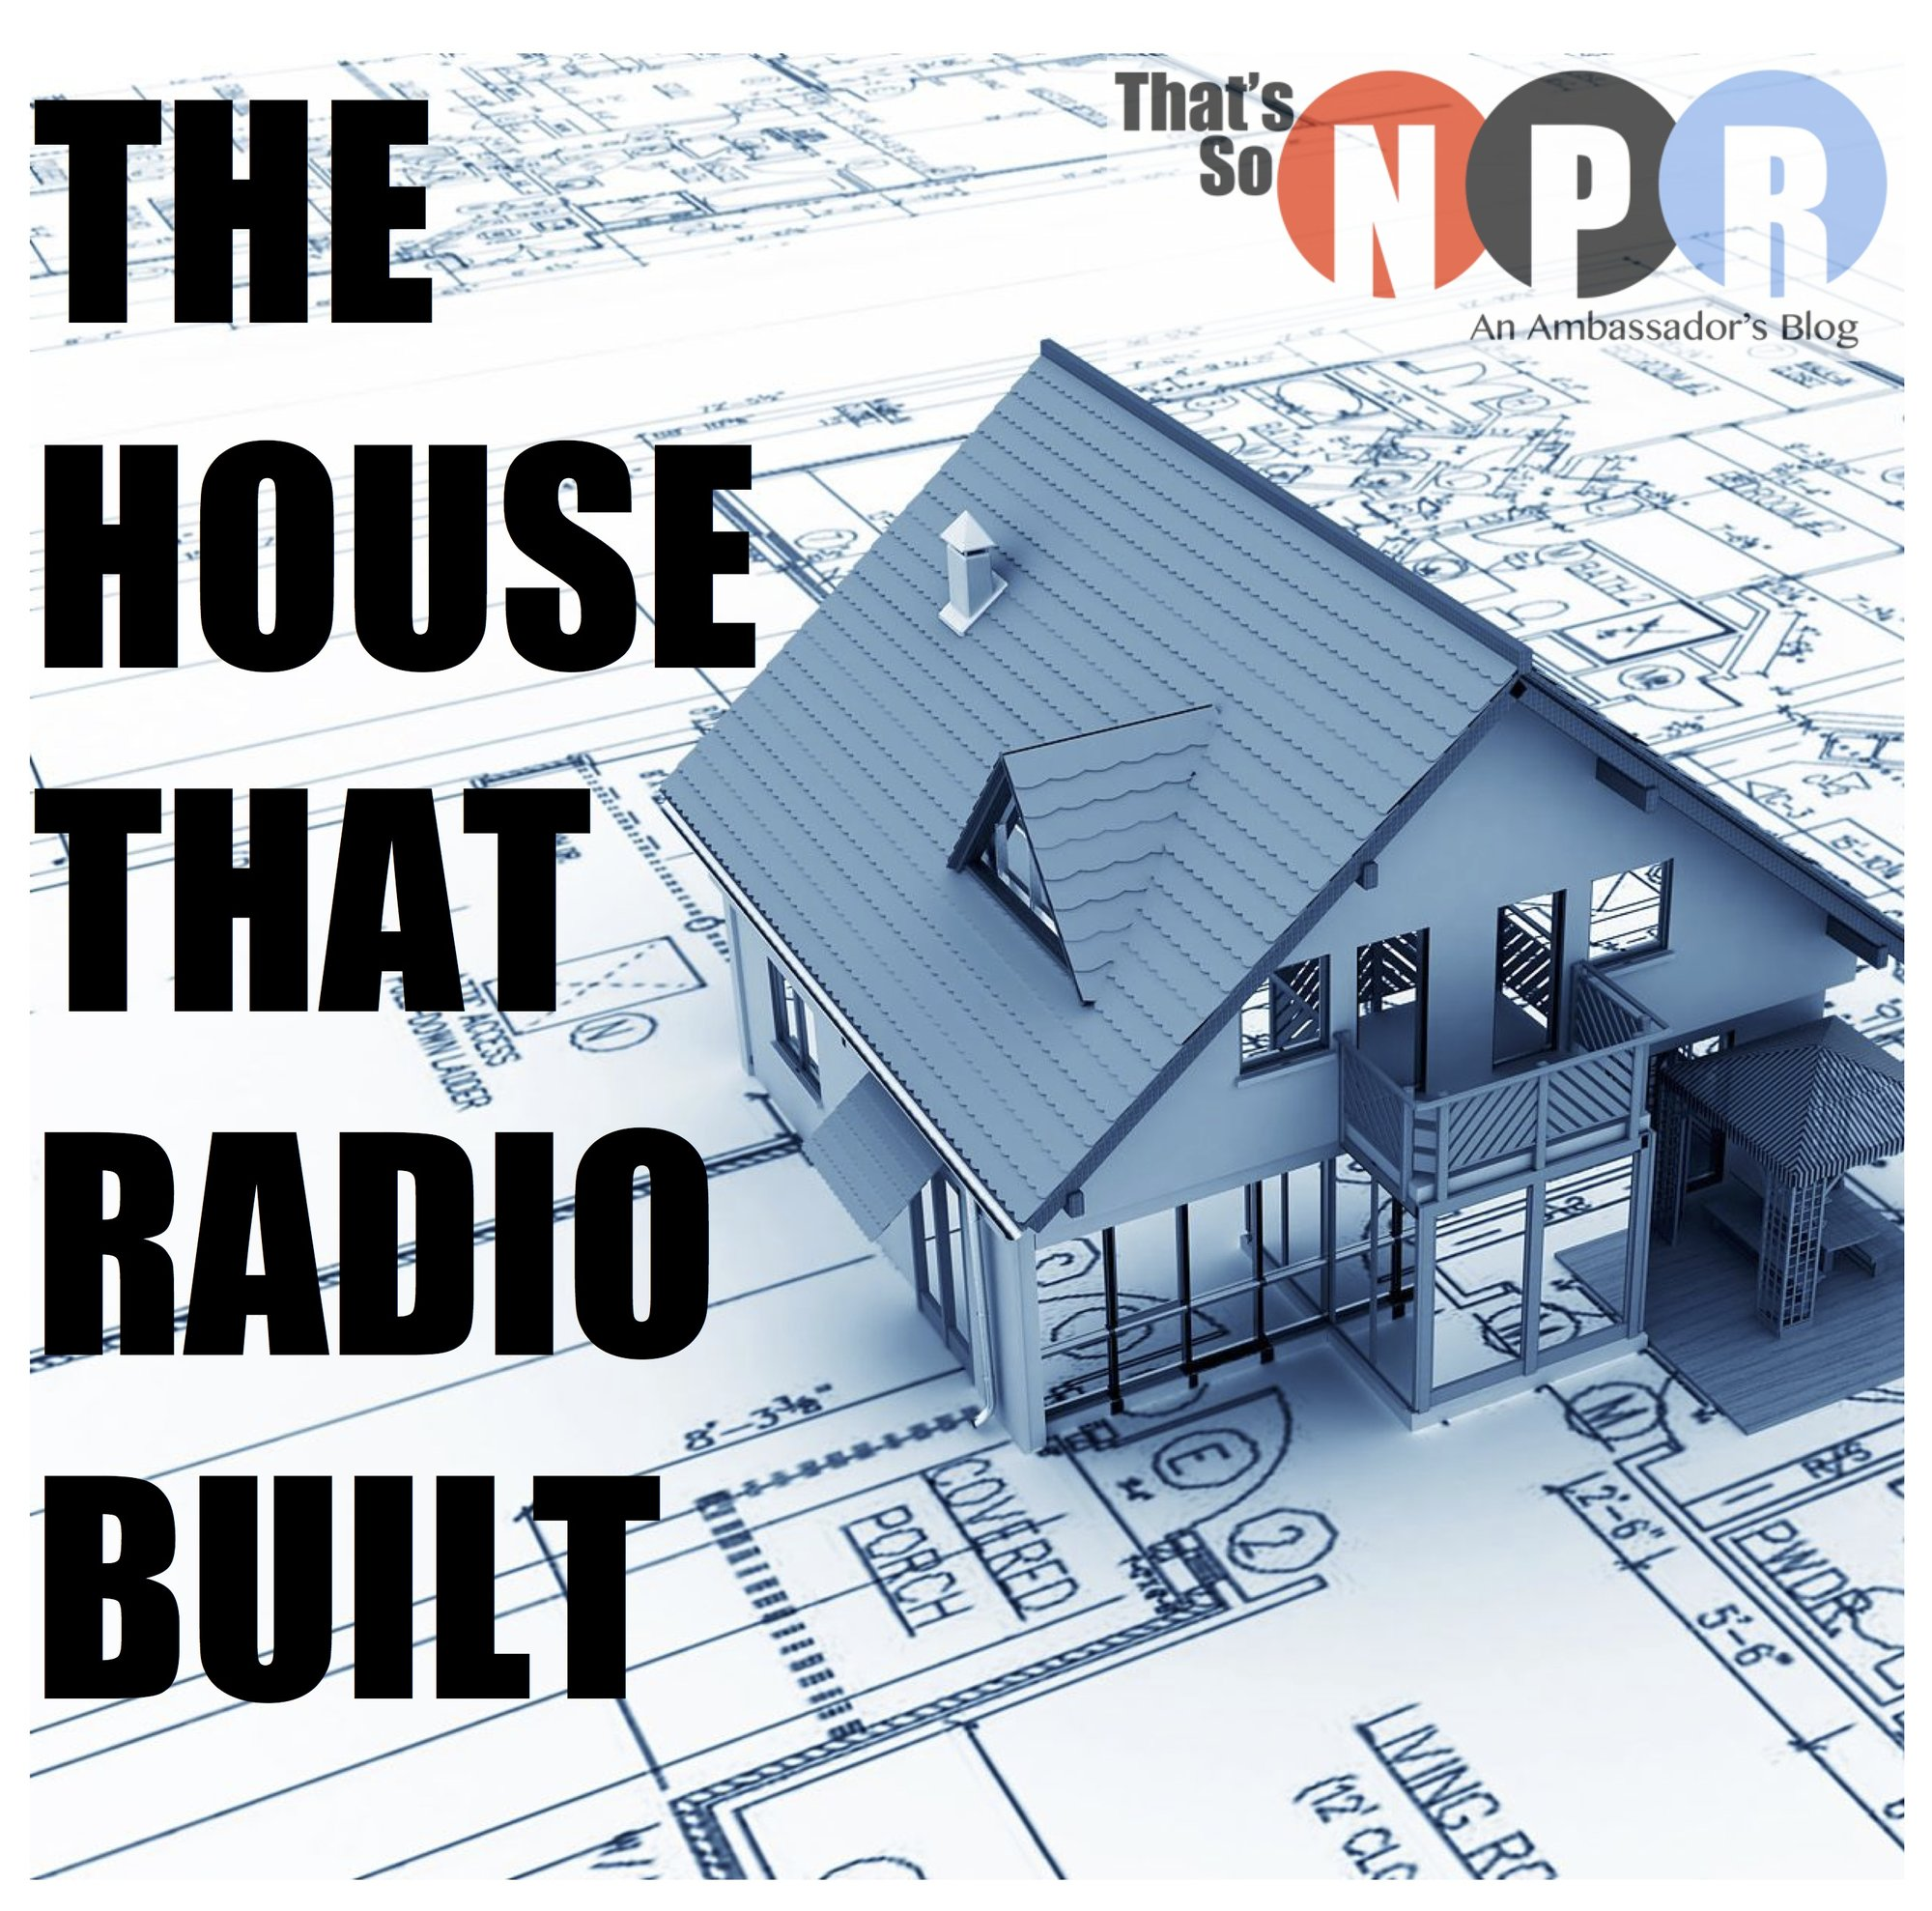 The House That Radio Built